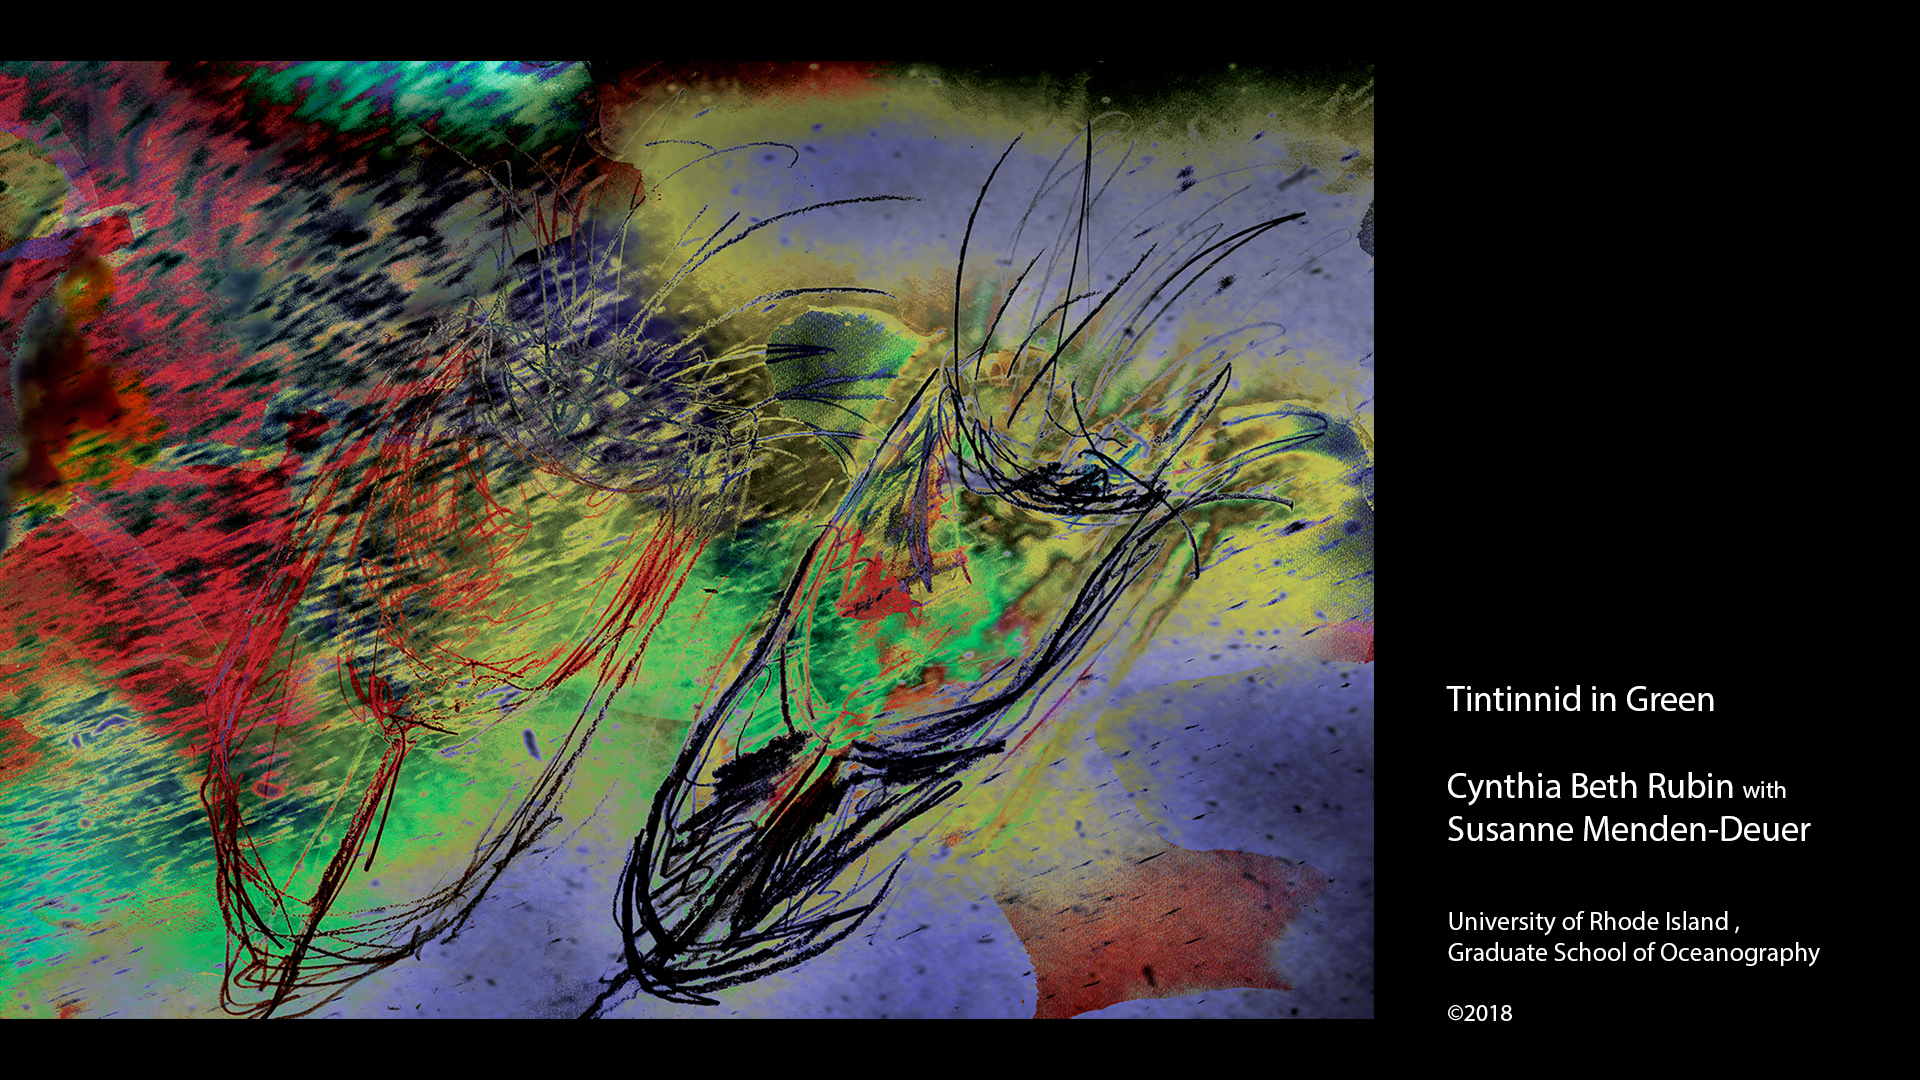 Our lives as humans are bound to the rarely seen and the invisible microscopic life of the ocean.  Constructed as nearly abstract paintings, these works invite the viewer to swim with the plankton, the jellyfish, and the krill that make life on our planet sustainable. Raw source material is from Antarctica and the North Atlantic, as well as microscopic captures of plankton from Narragansett Bay, interpreted both digitally and in hand drawings.  The works are collaborations between digital artist Cynthia Beth Rubin and Oceanographers in the Menden-Deuer lab at the University of Rhode Island, who gathered the raw imagery from oceans near and far.